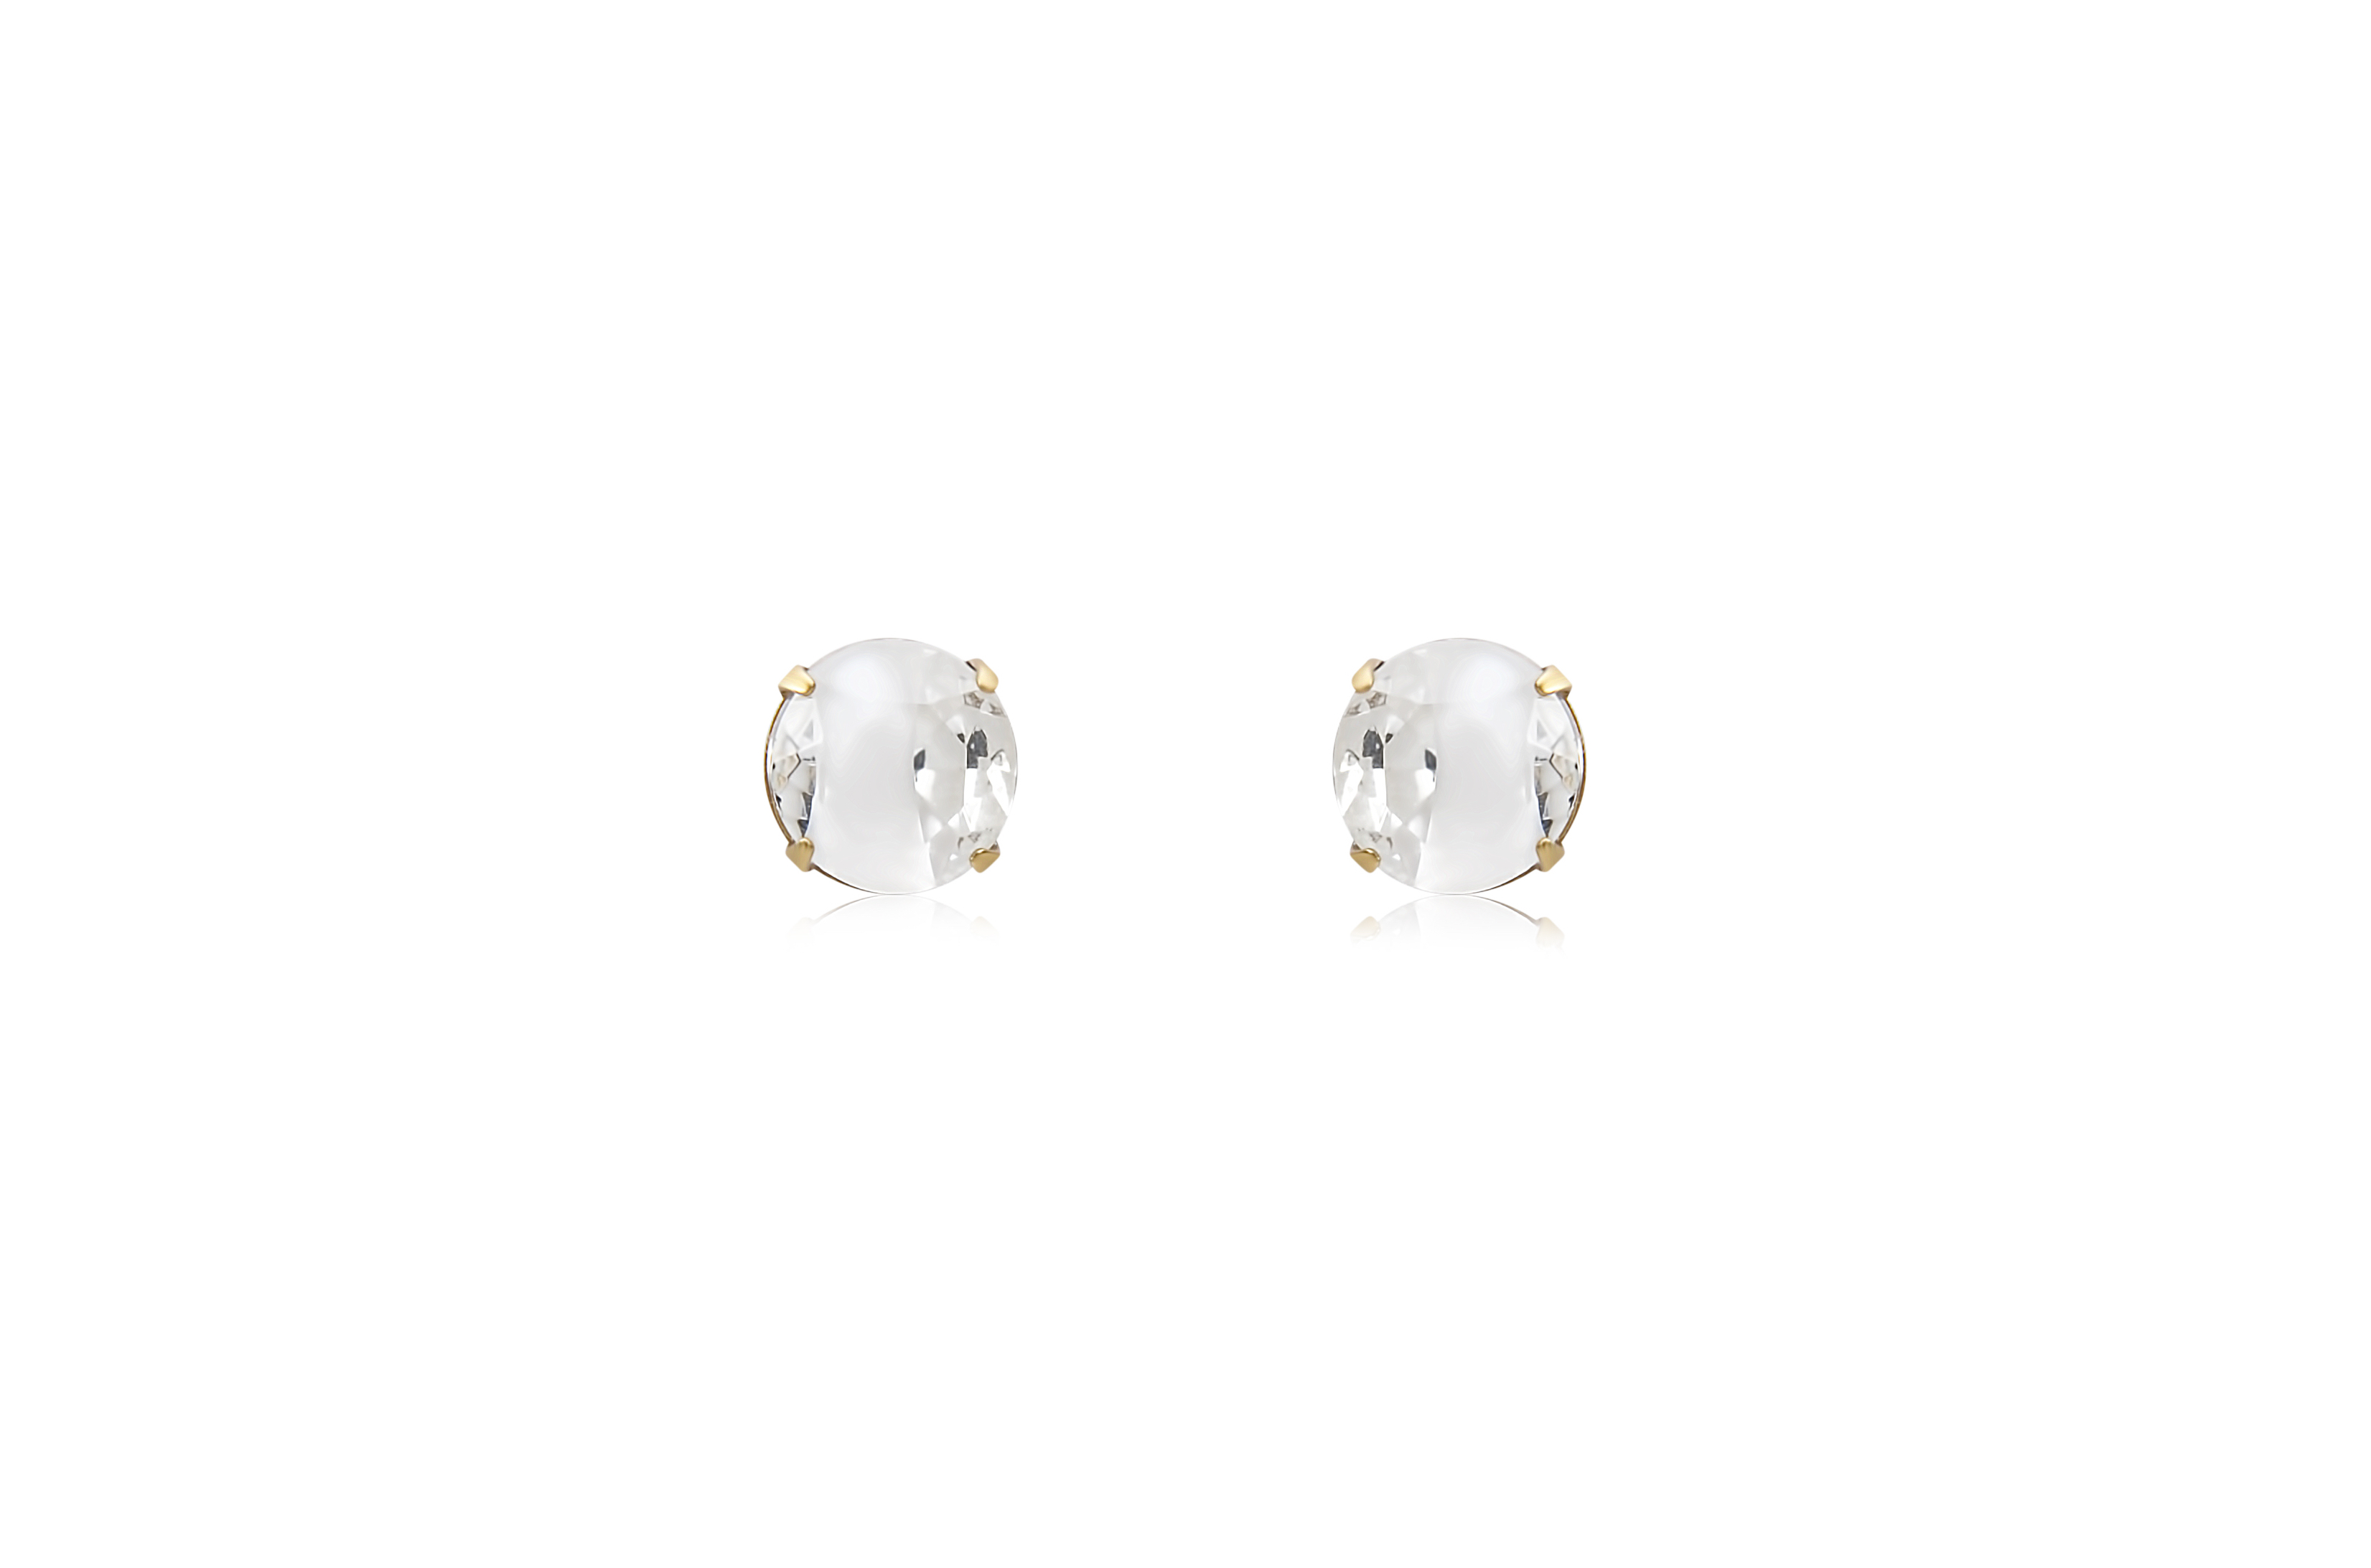 KENDRA STUD EARRINGS - IN WHITE